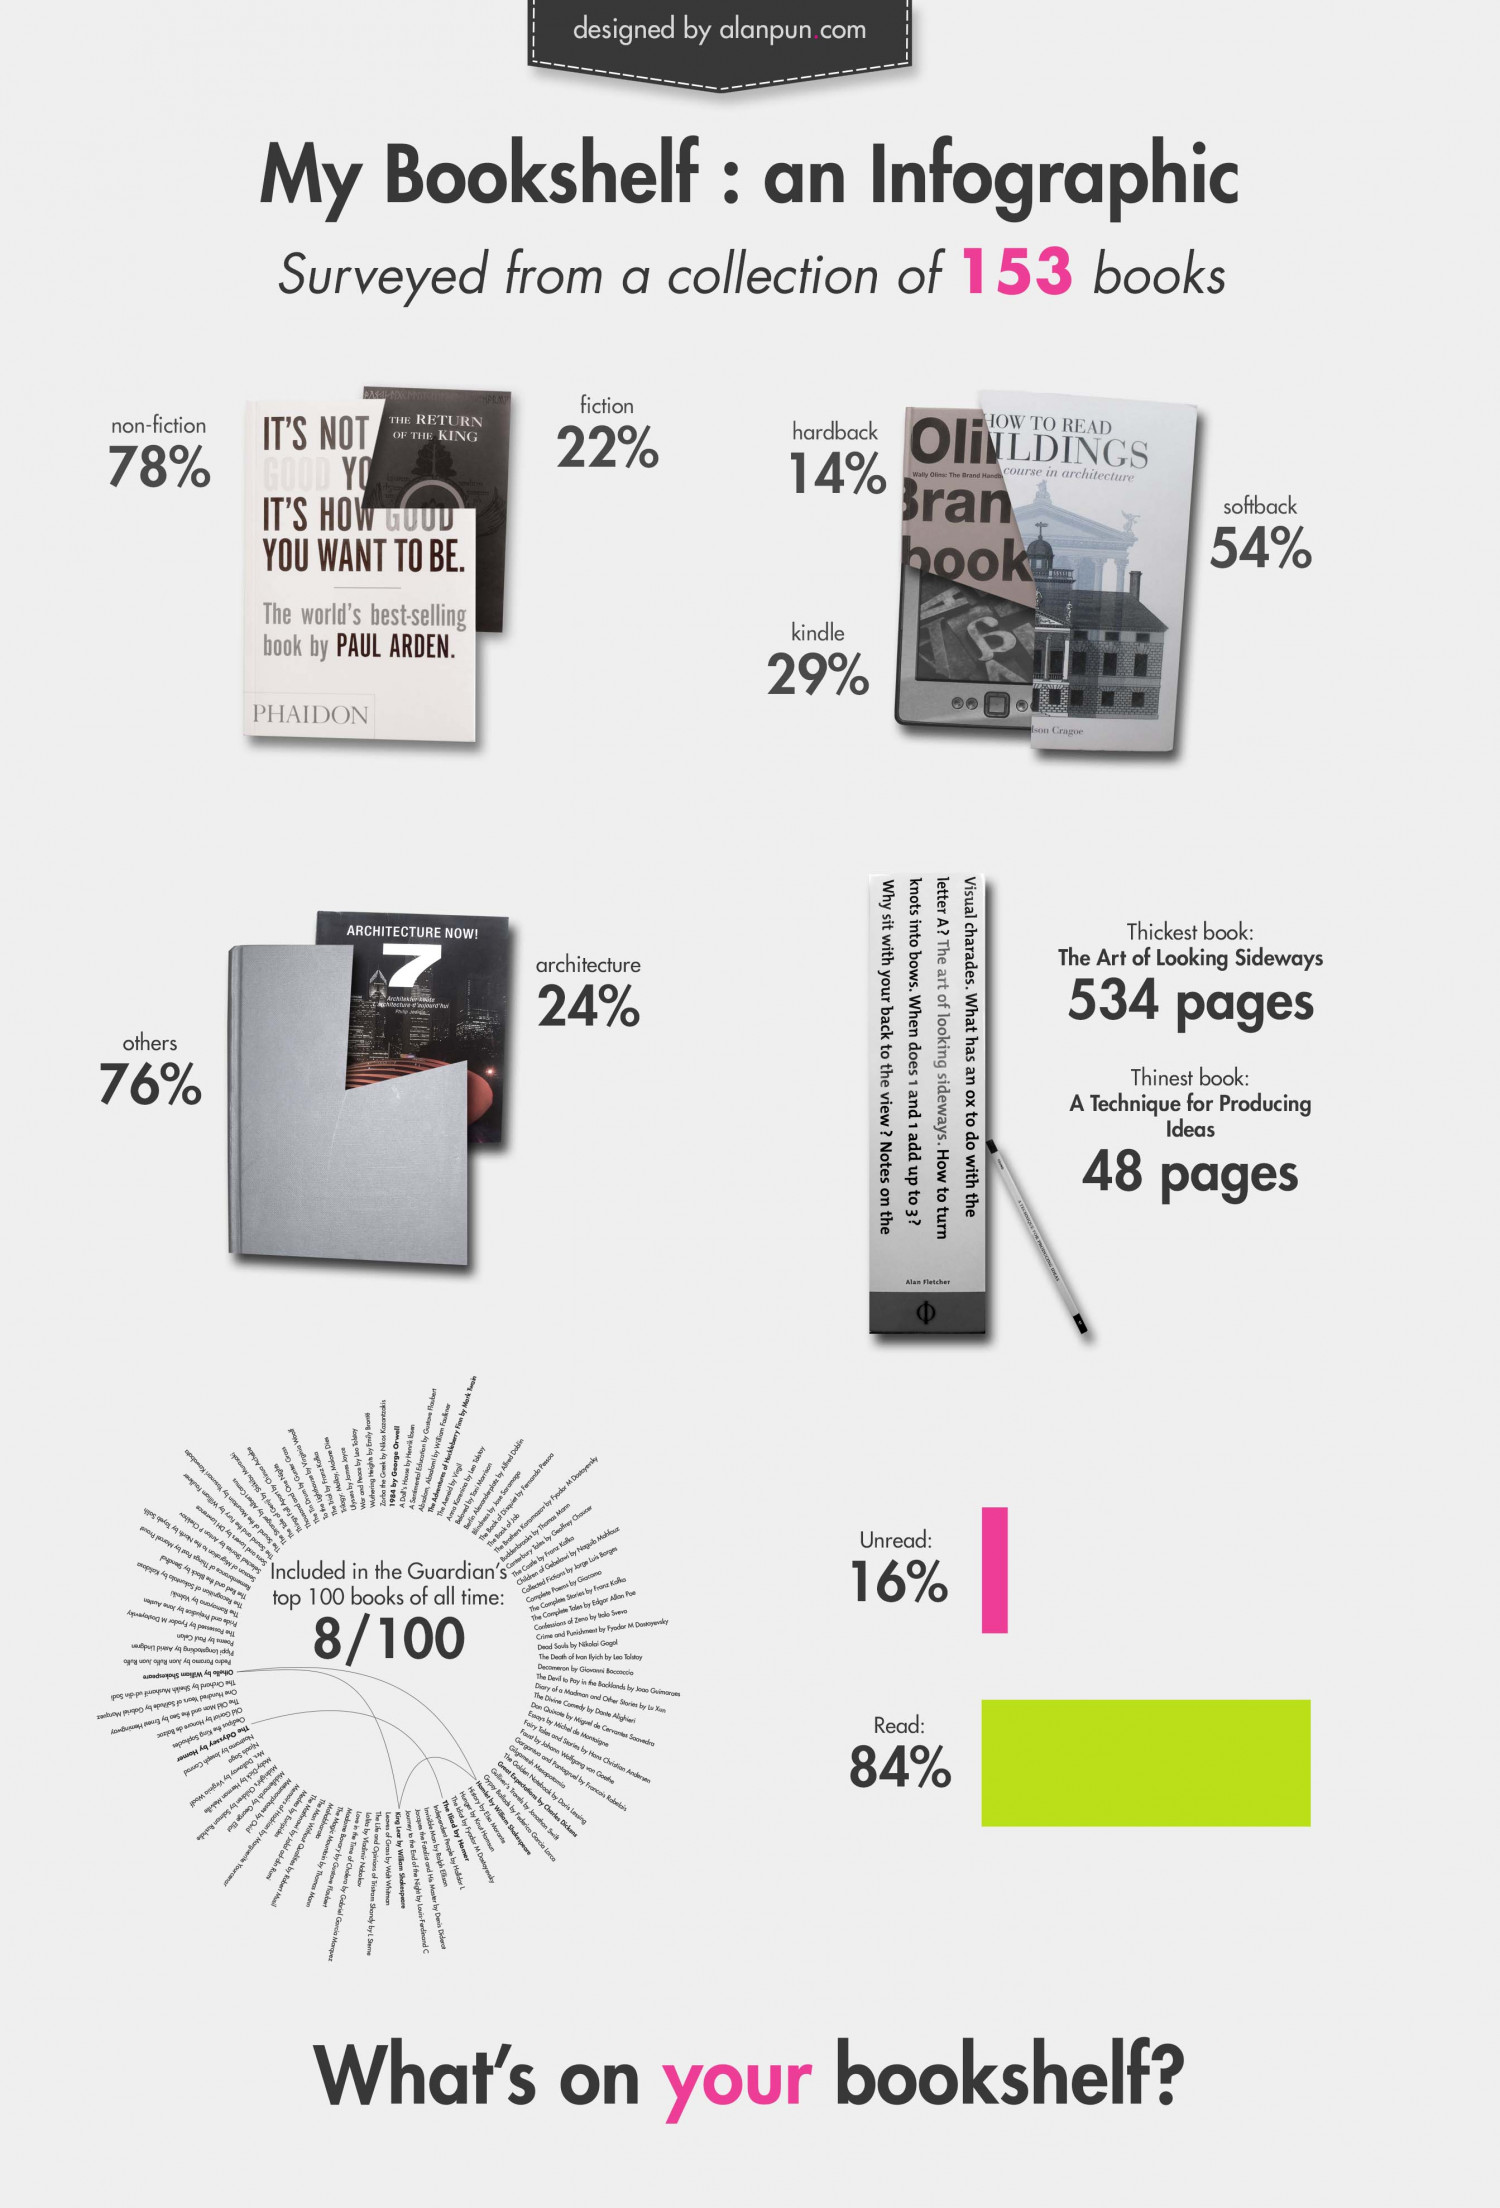 My Bookshelf: an Infographic Infographic